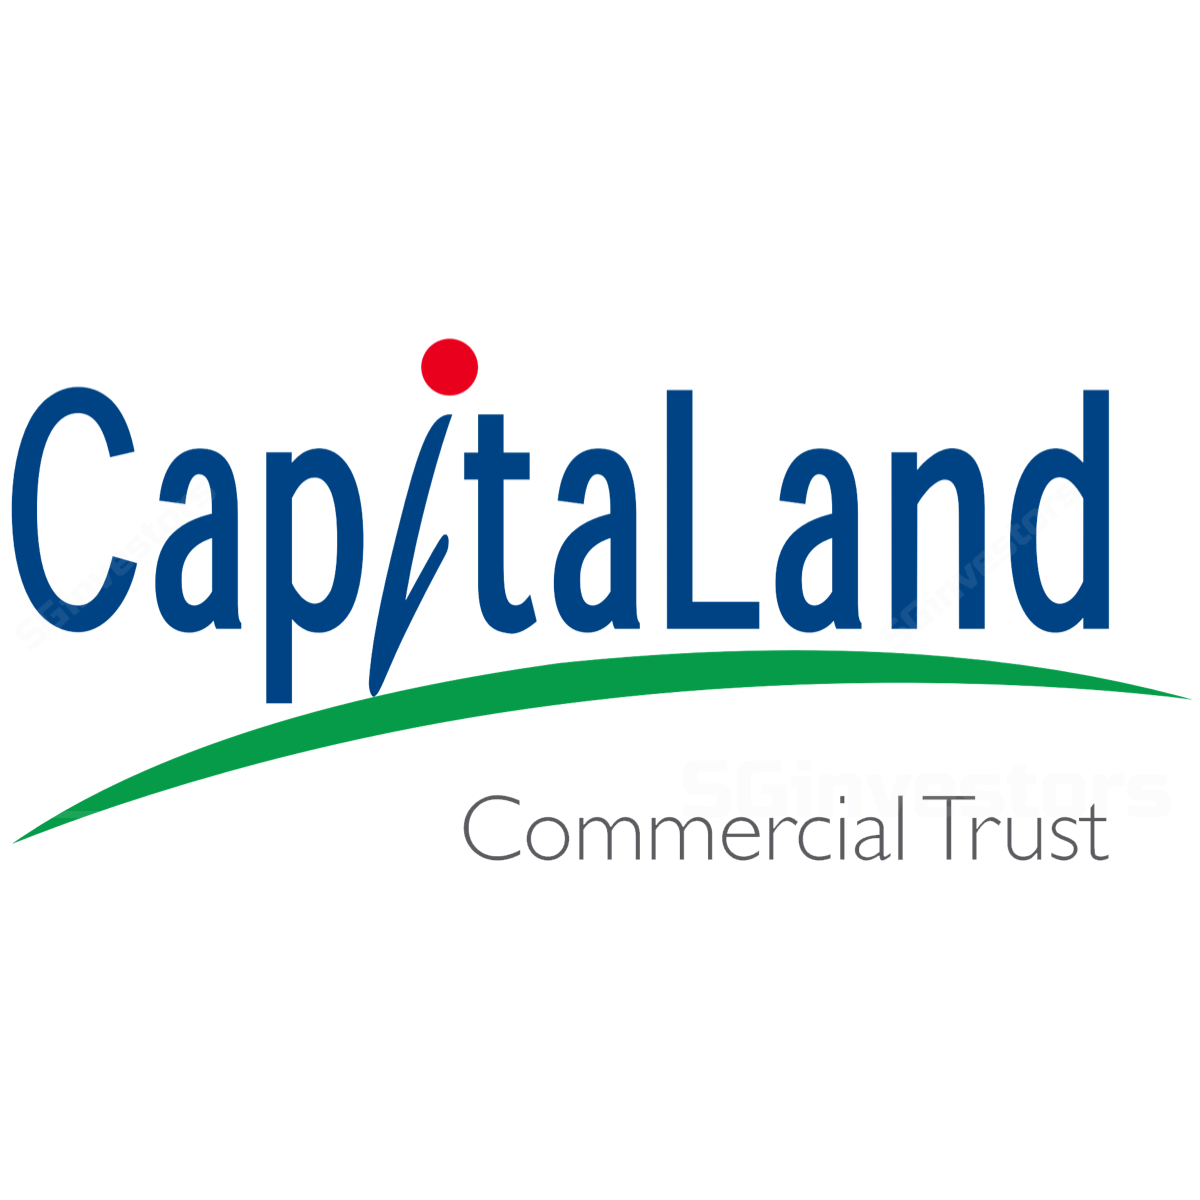 CapitaLand Commercial Trust - DBS Vickers 2018-04-13: CapitaSpring Off The Starting Line